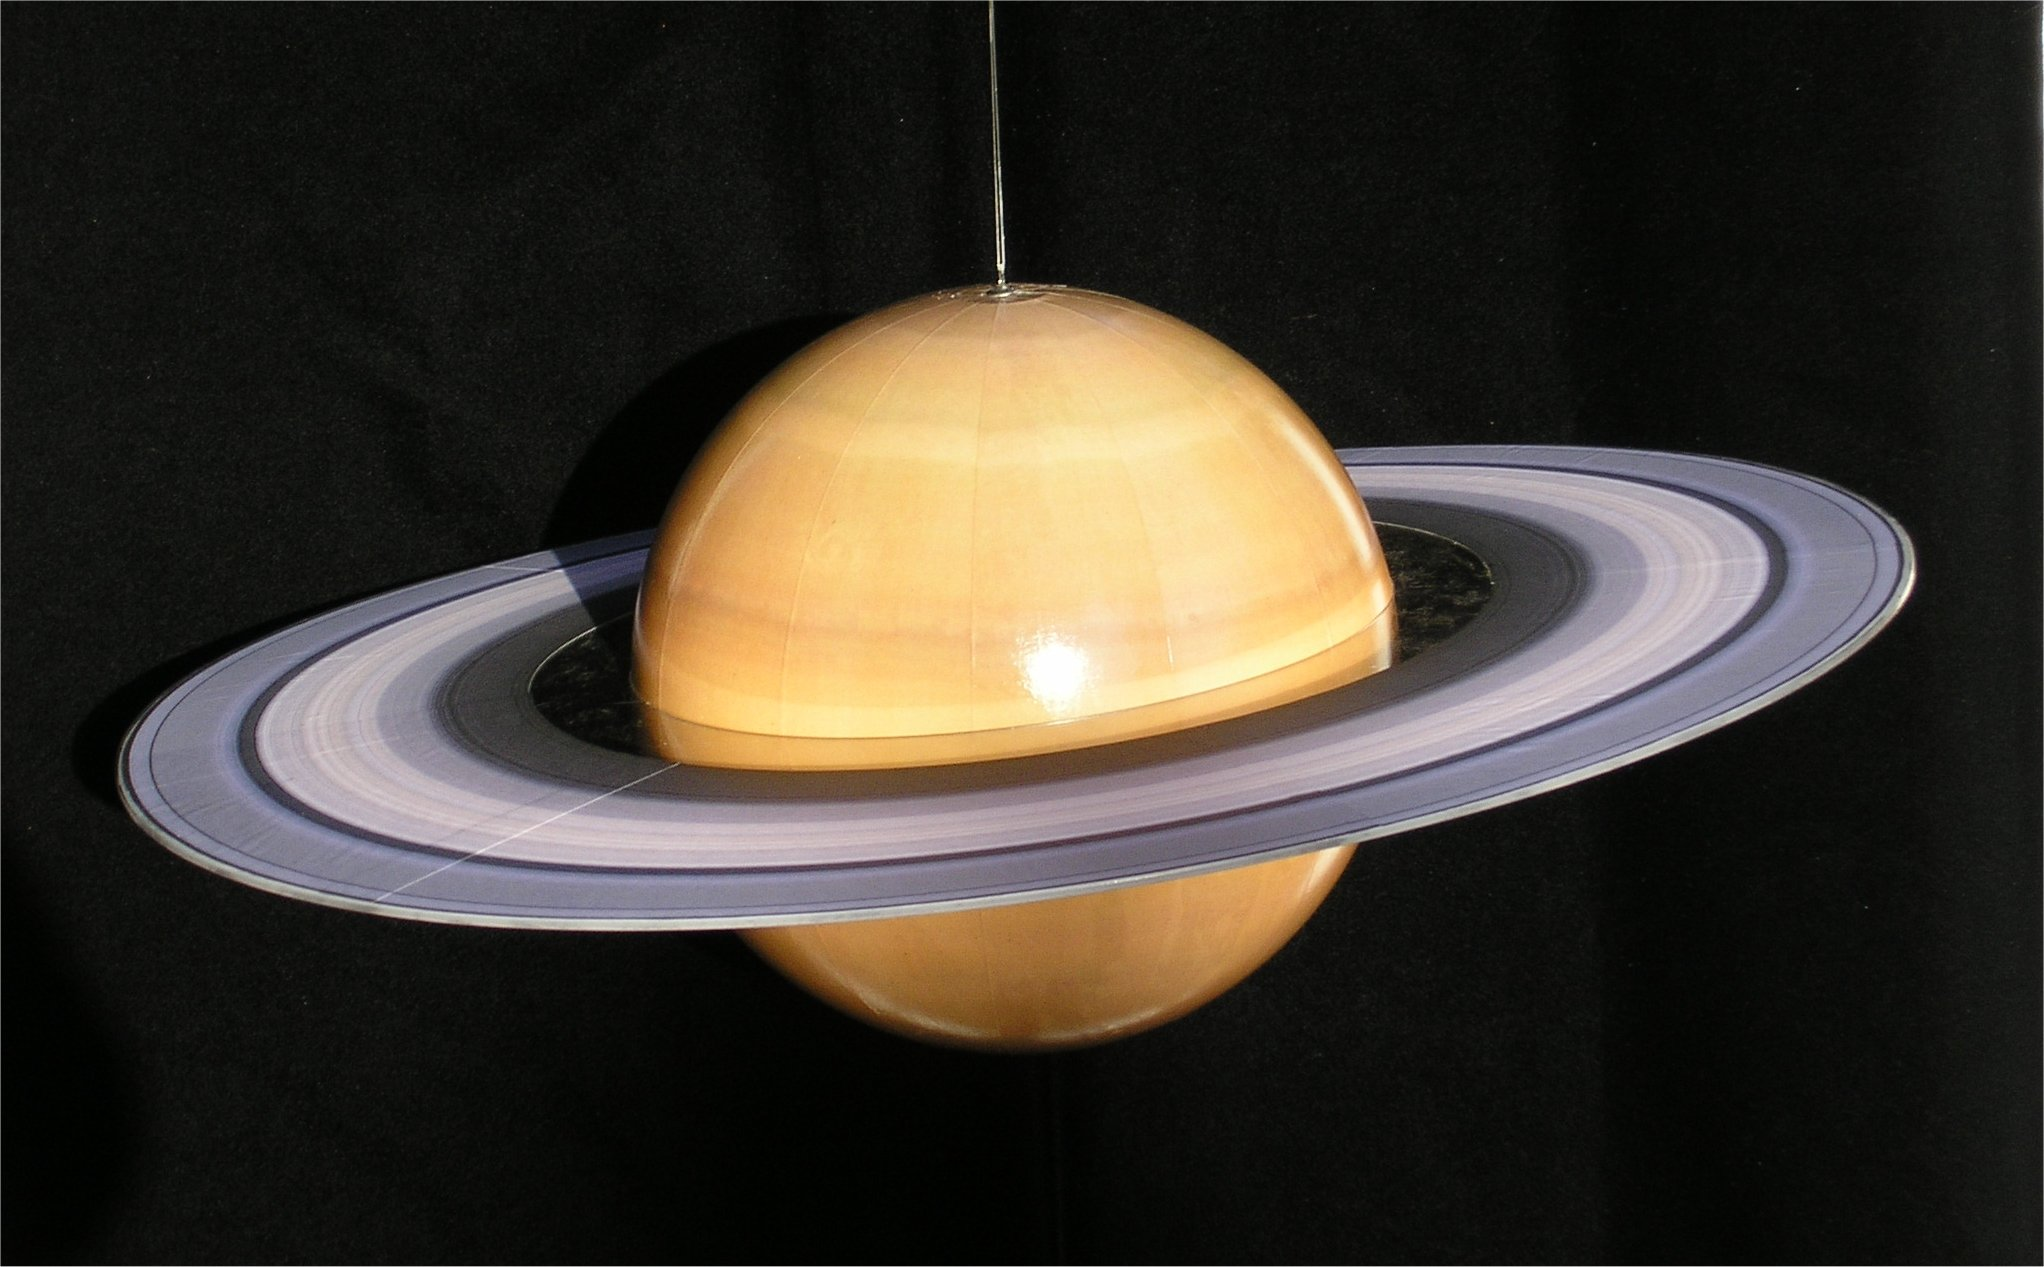 saturn class planets - photo #30